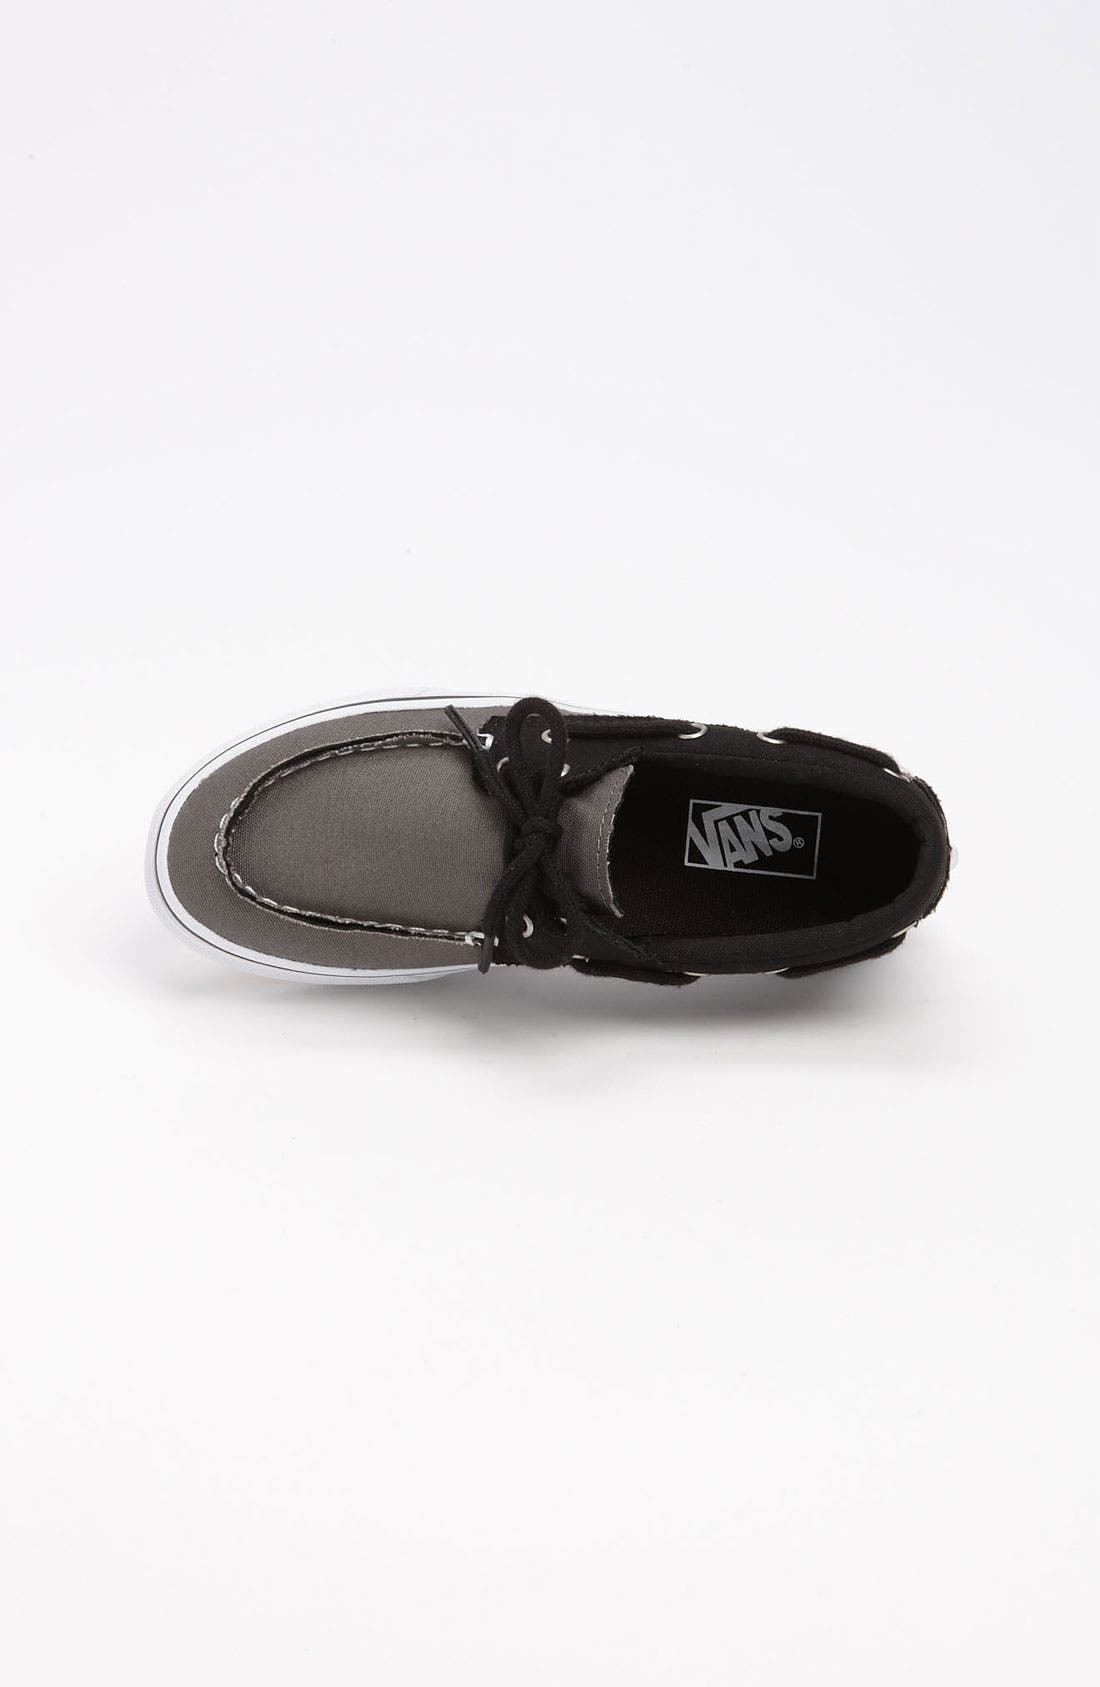 Alternate Image 3  - Vans 'Zapato del Barco' Boat Shoe (Baby, Walker, Toddler, Little Kid & Big Kid)